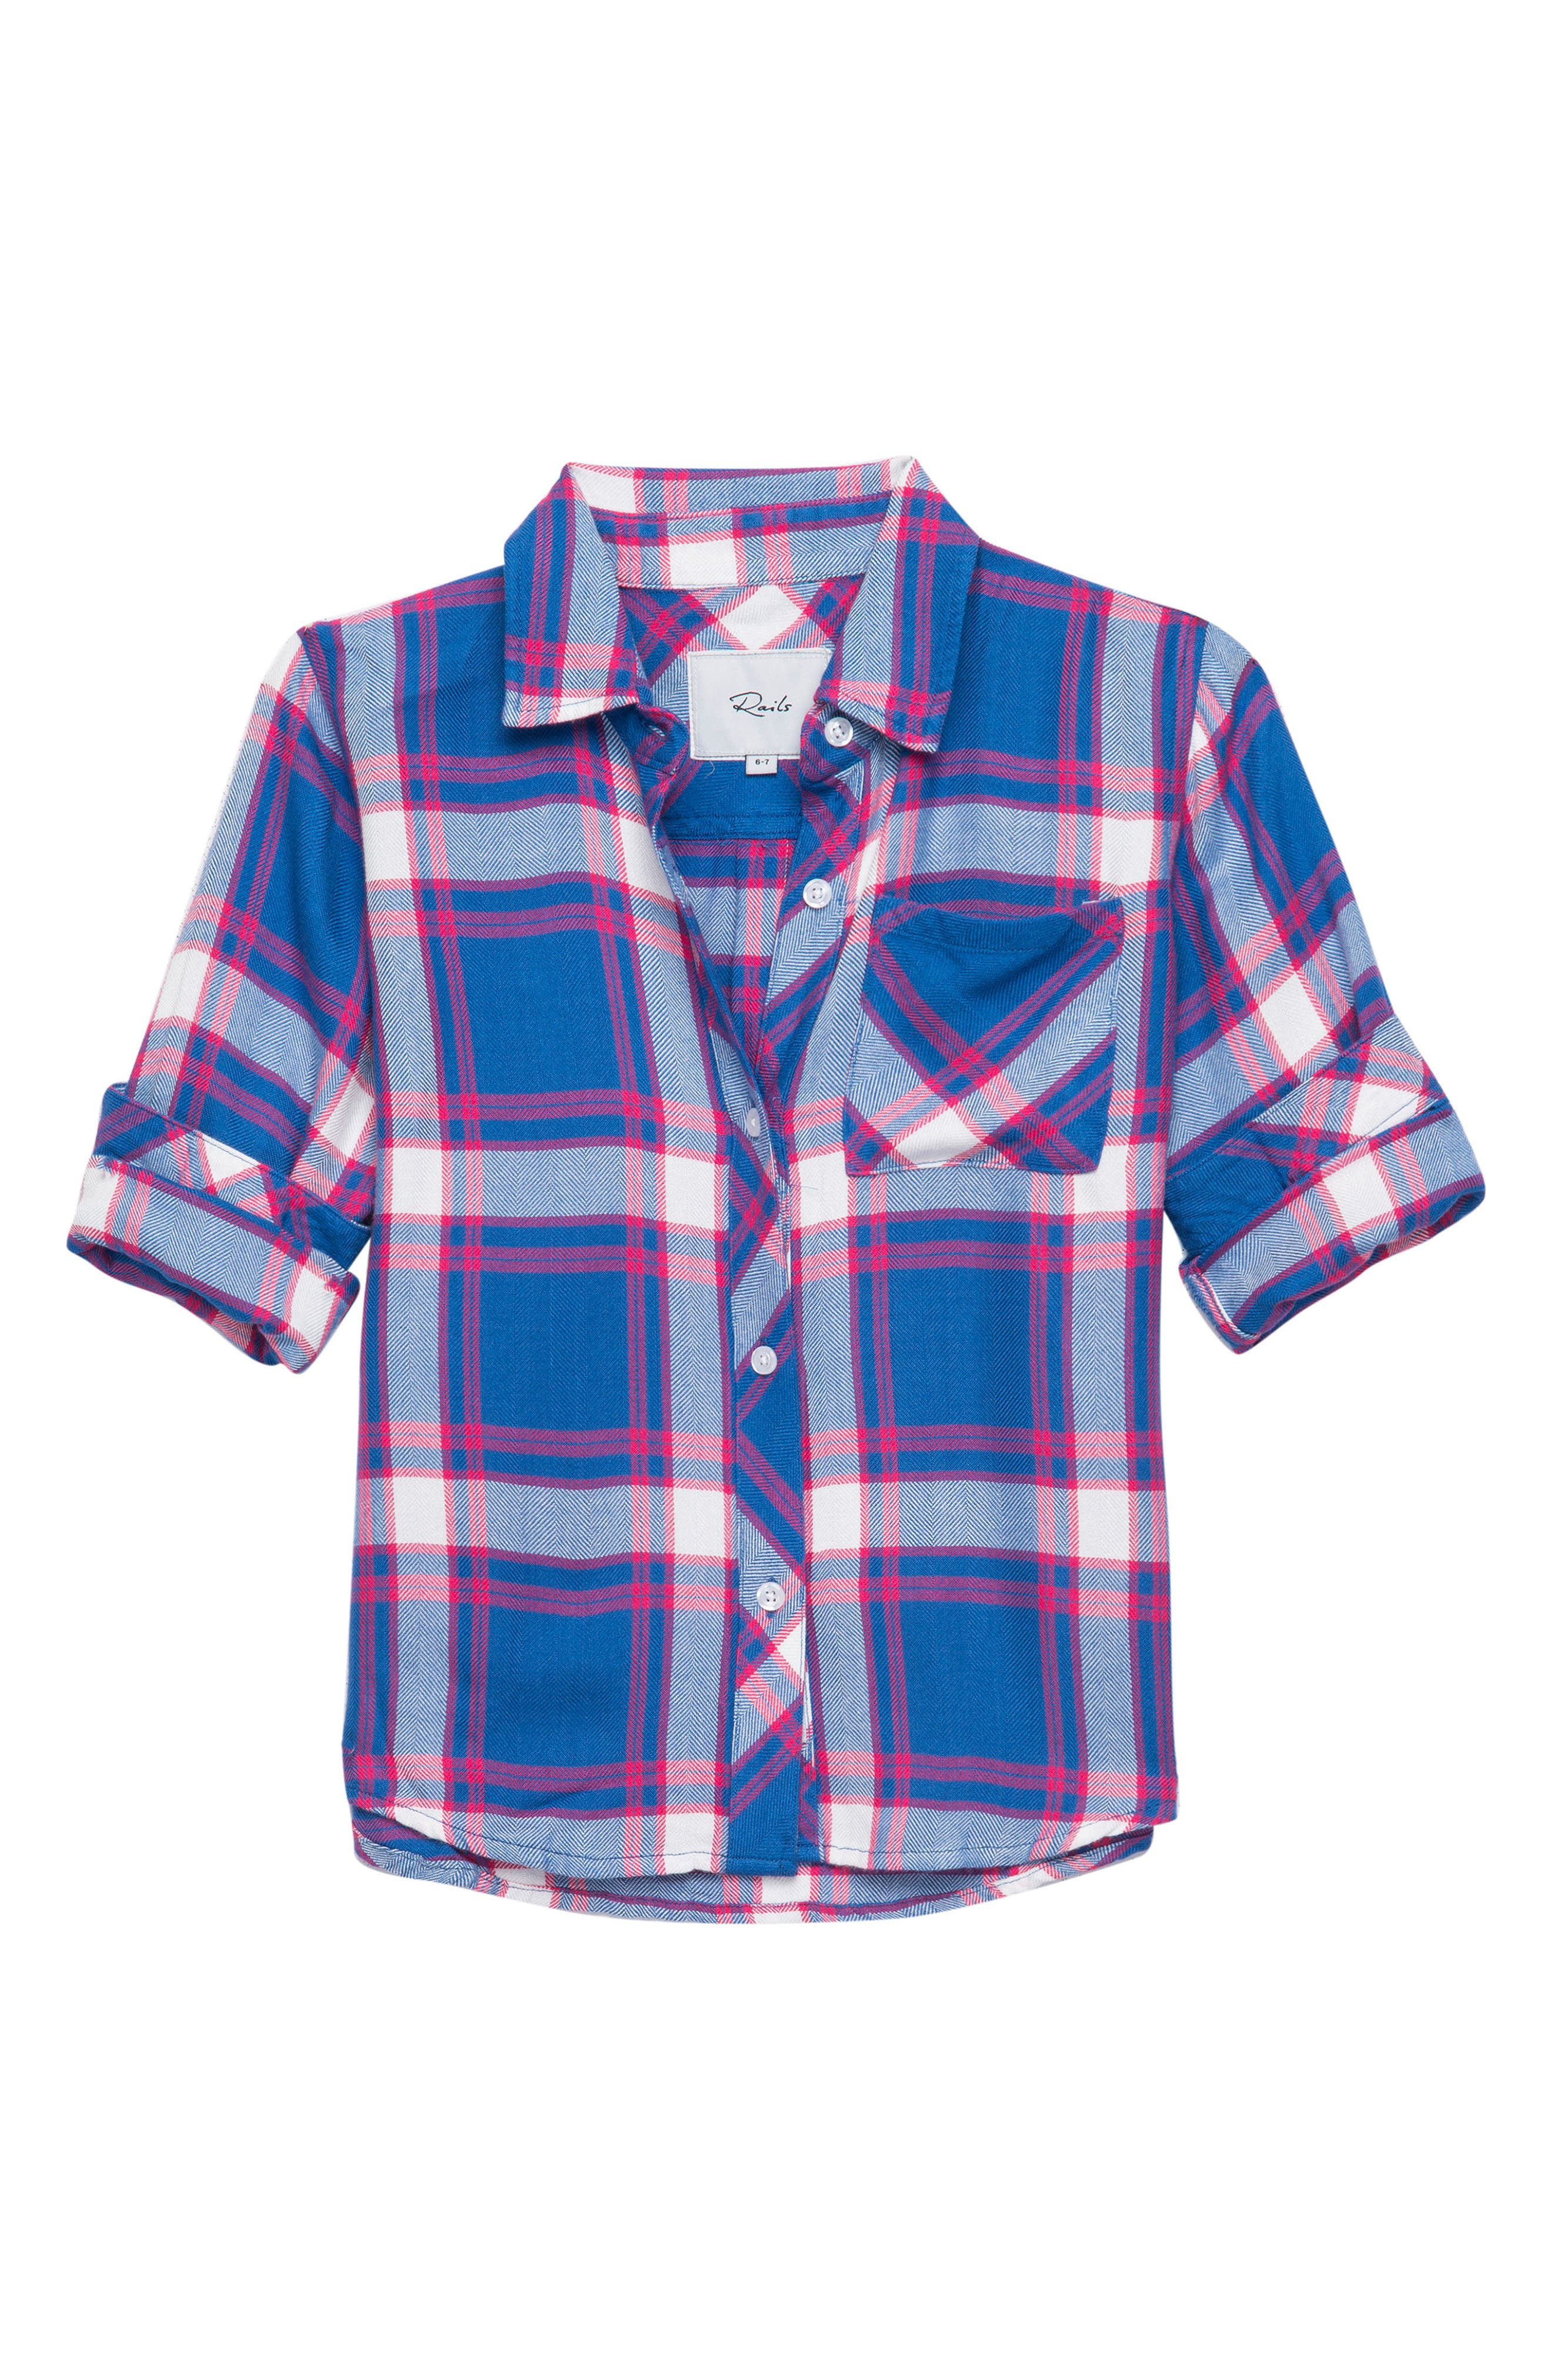 Hudson Plaid Shirt,                         Main,                         color,